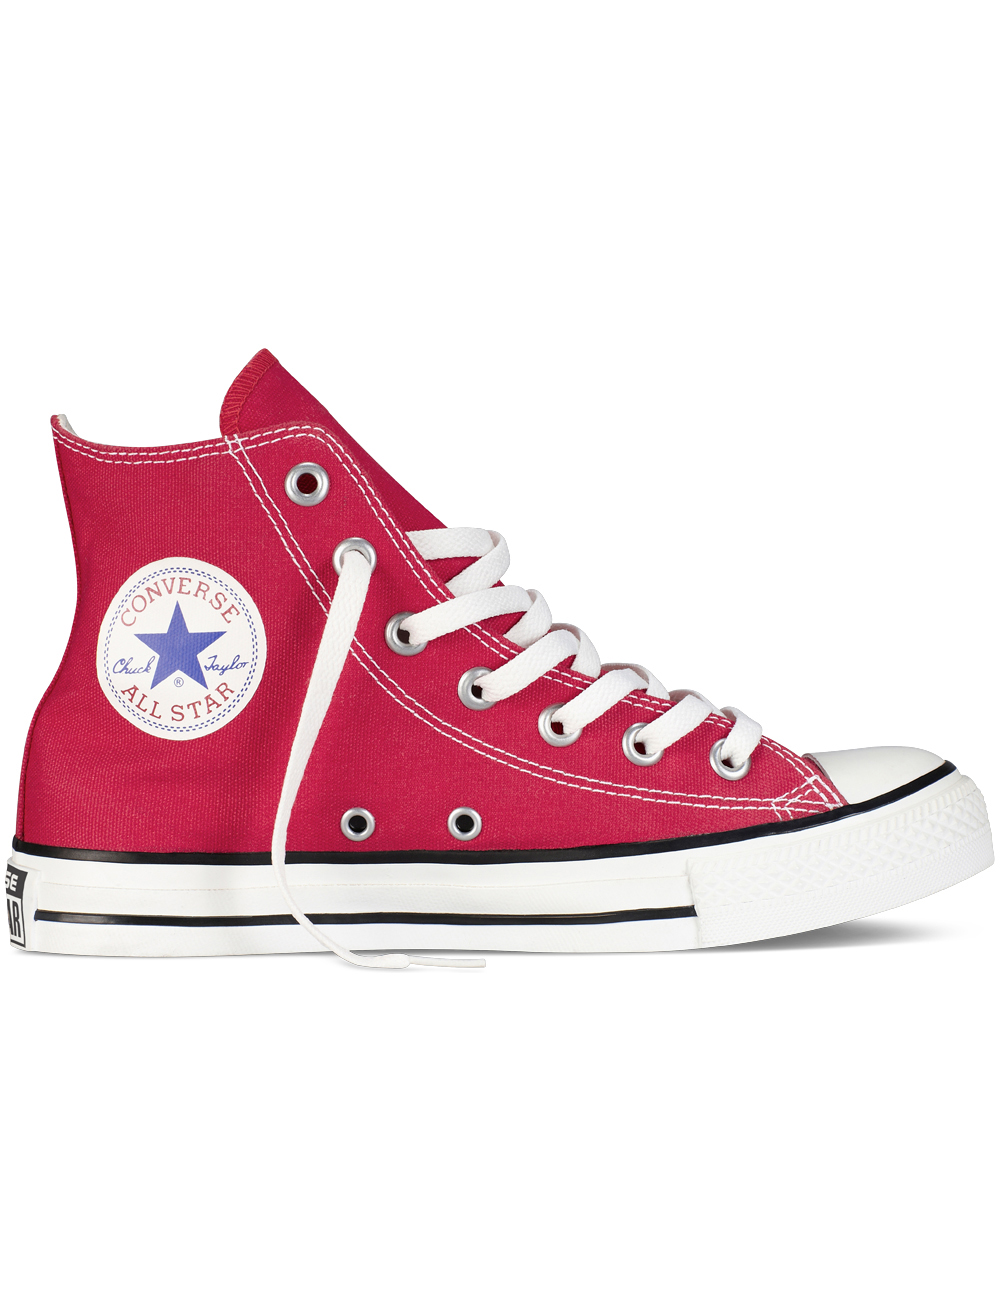 64feba508c9f1d Sportschuhe Converse All Star